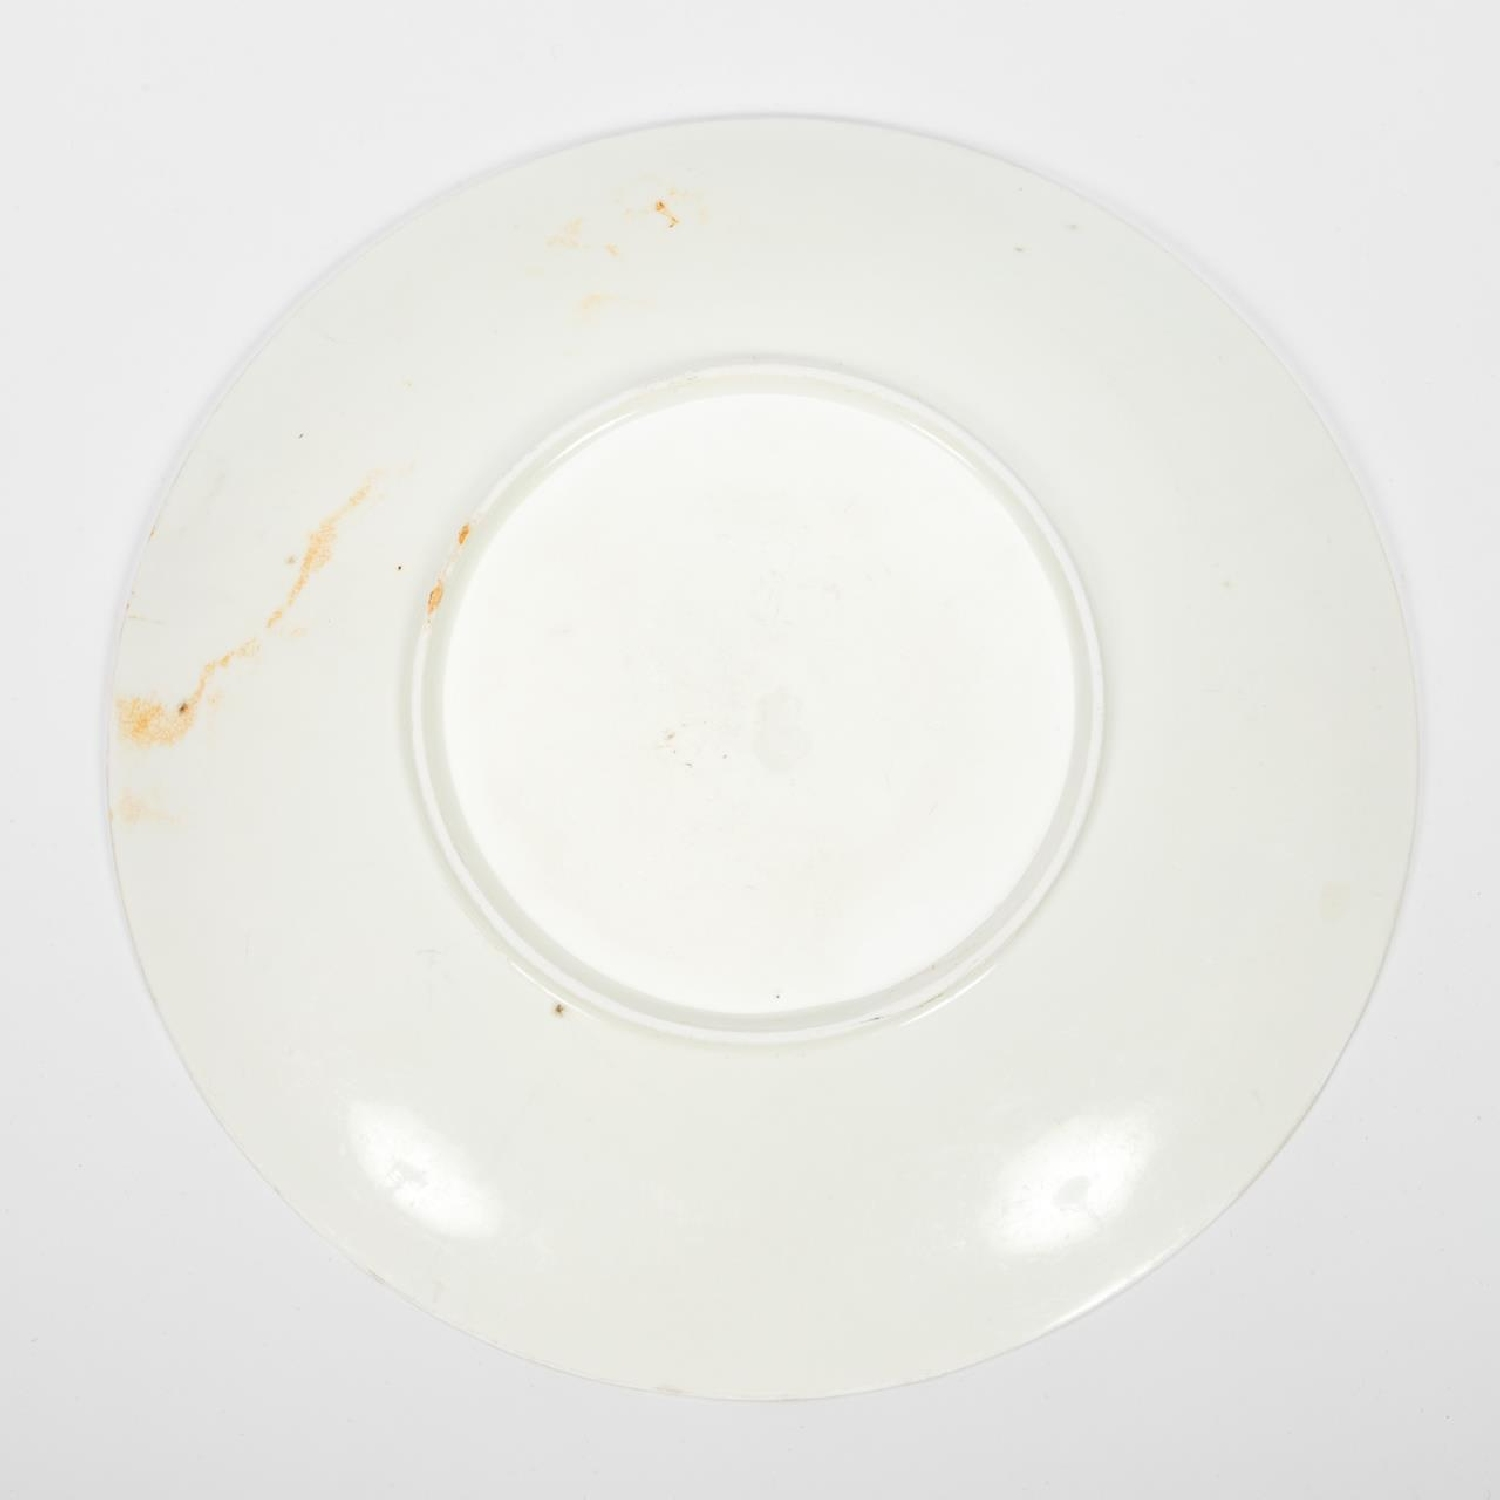 RMS CARPATHIA, SALVAGED FIRST CLASS PLATE - Image 3 of 5